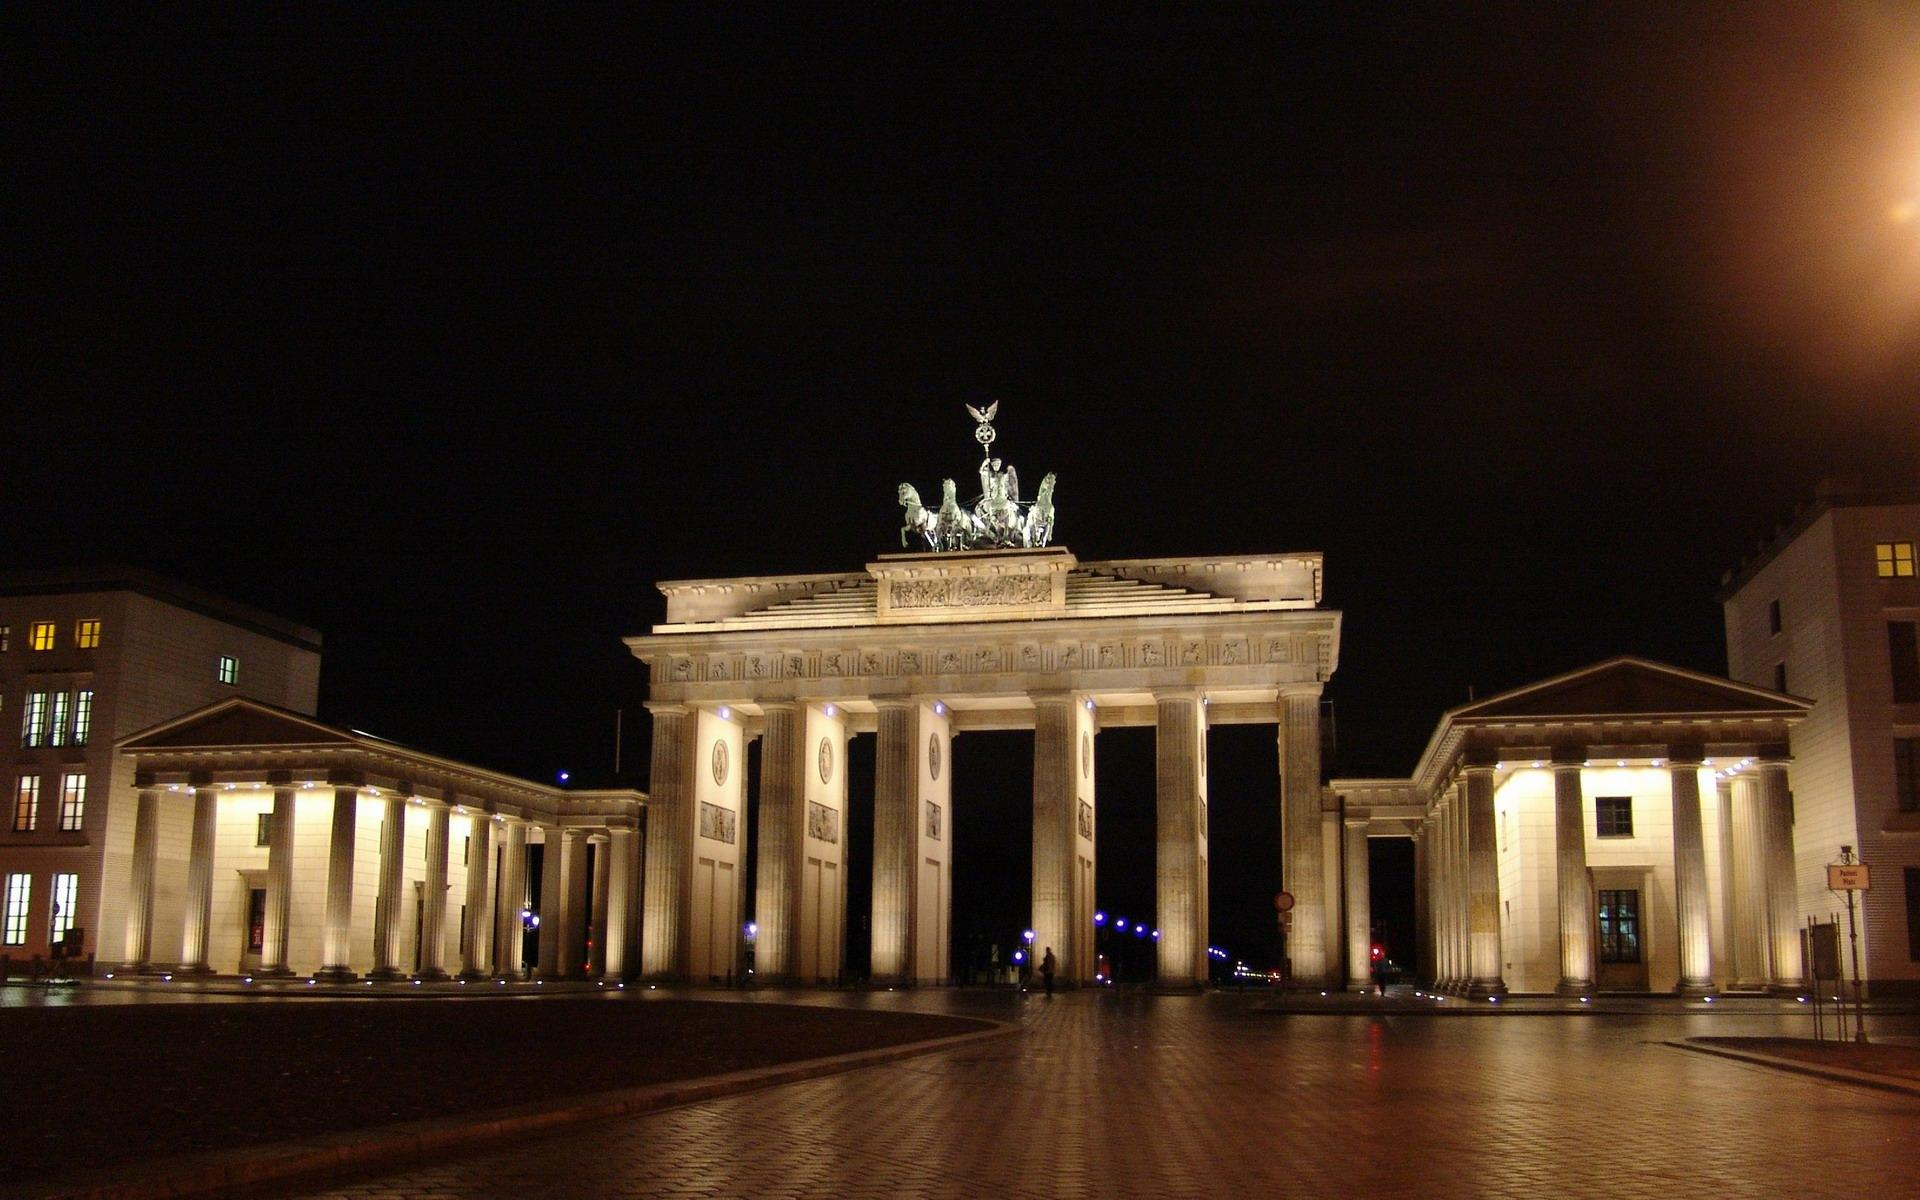 Triumphal Brandenburg Gate Wallpapers – Travel HD Wallpapers